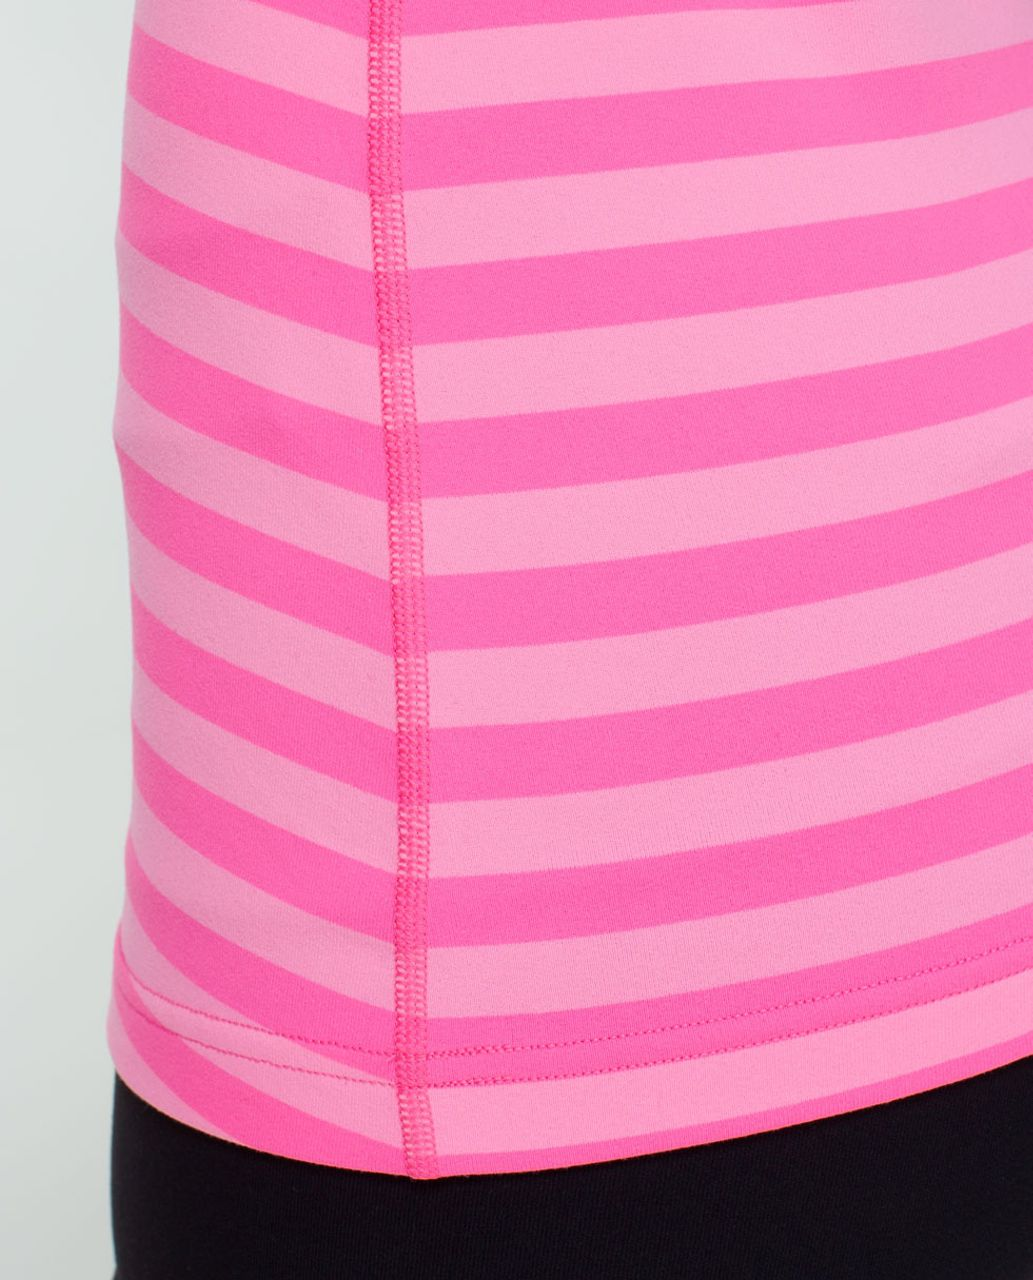 Lululemon Cool Racerback - Apex Stripe Zing Pink Light